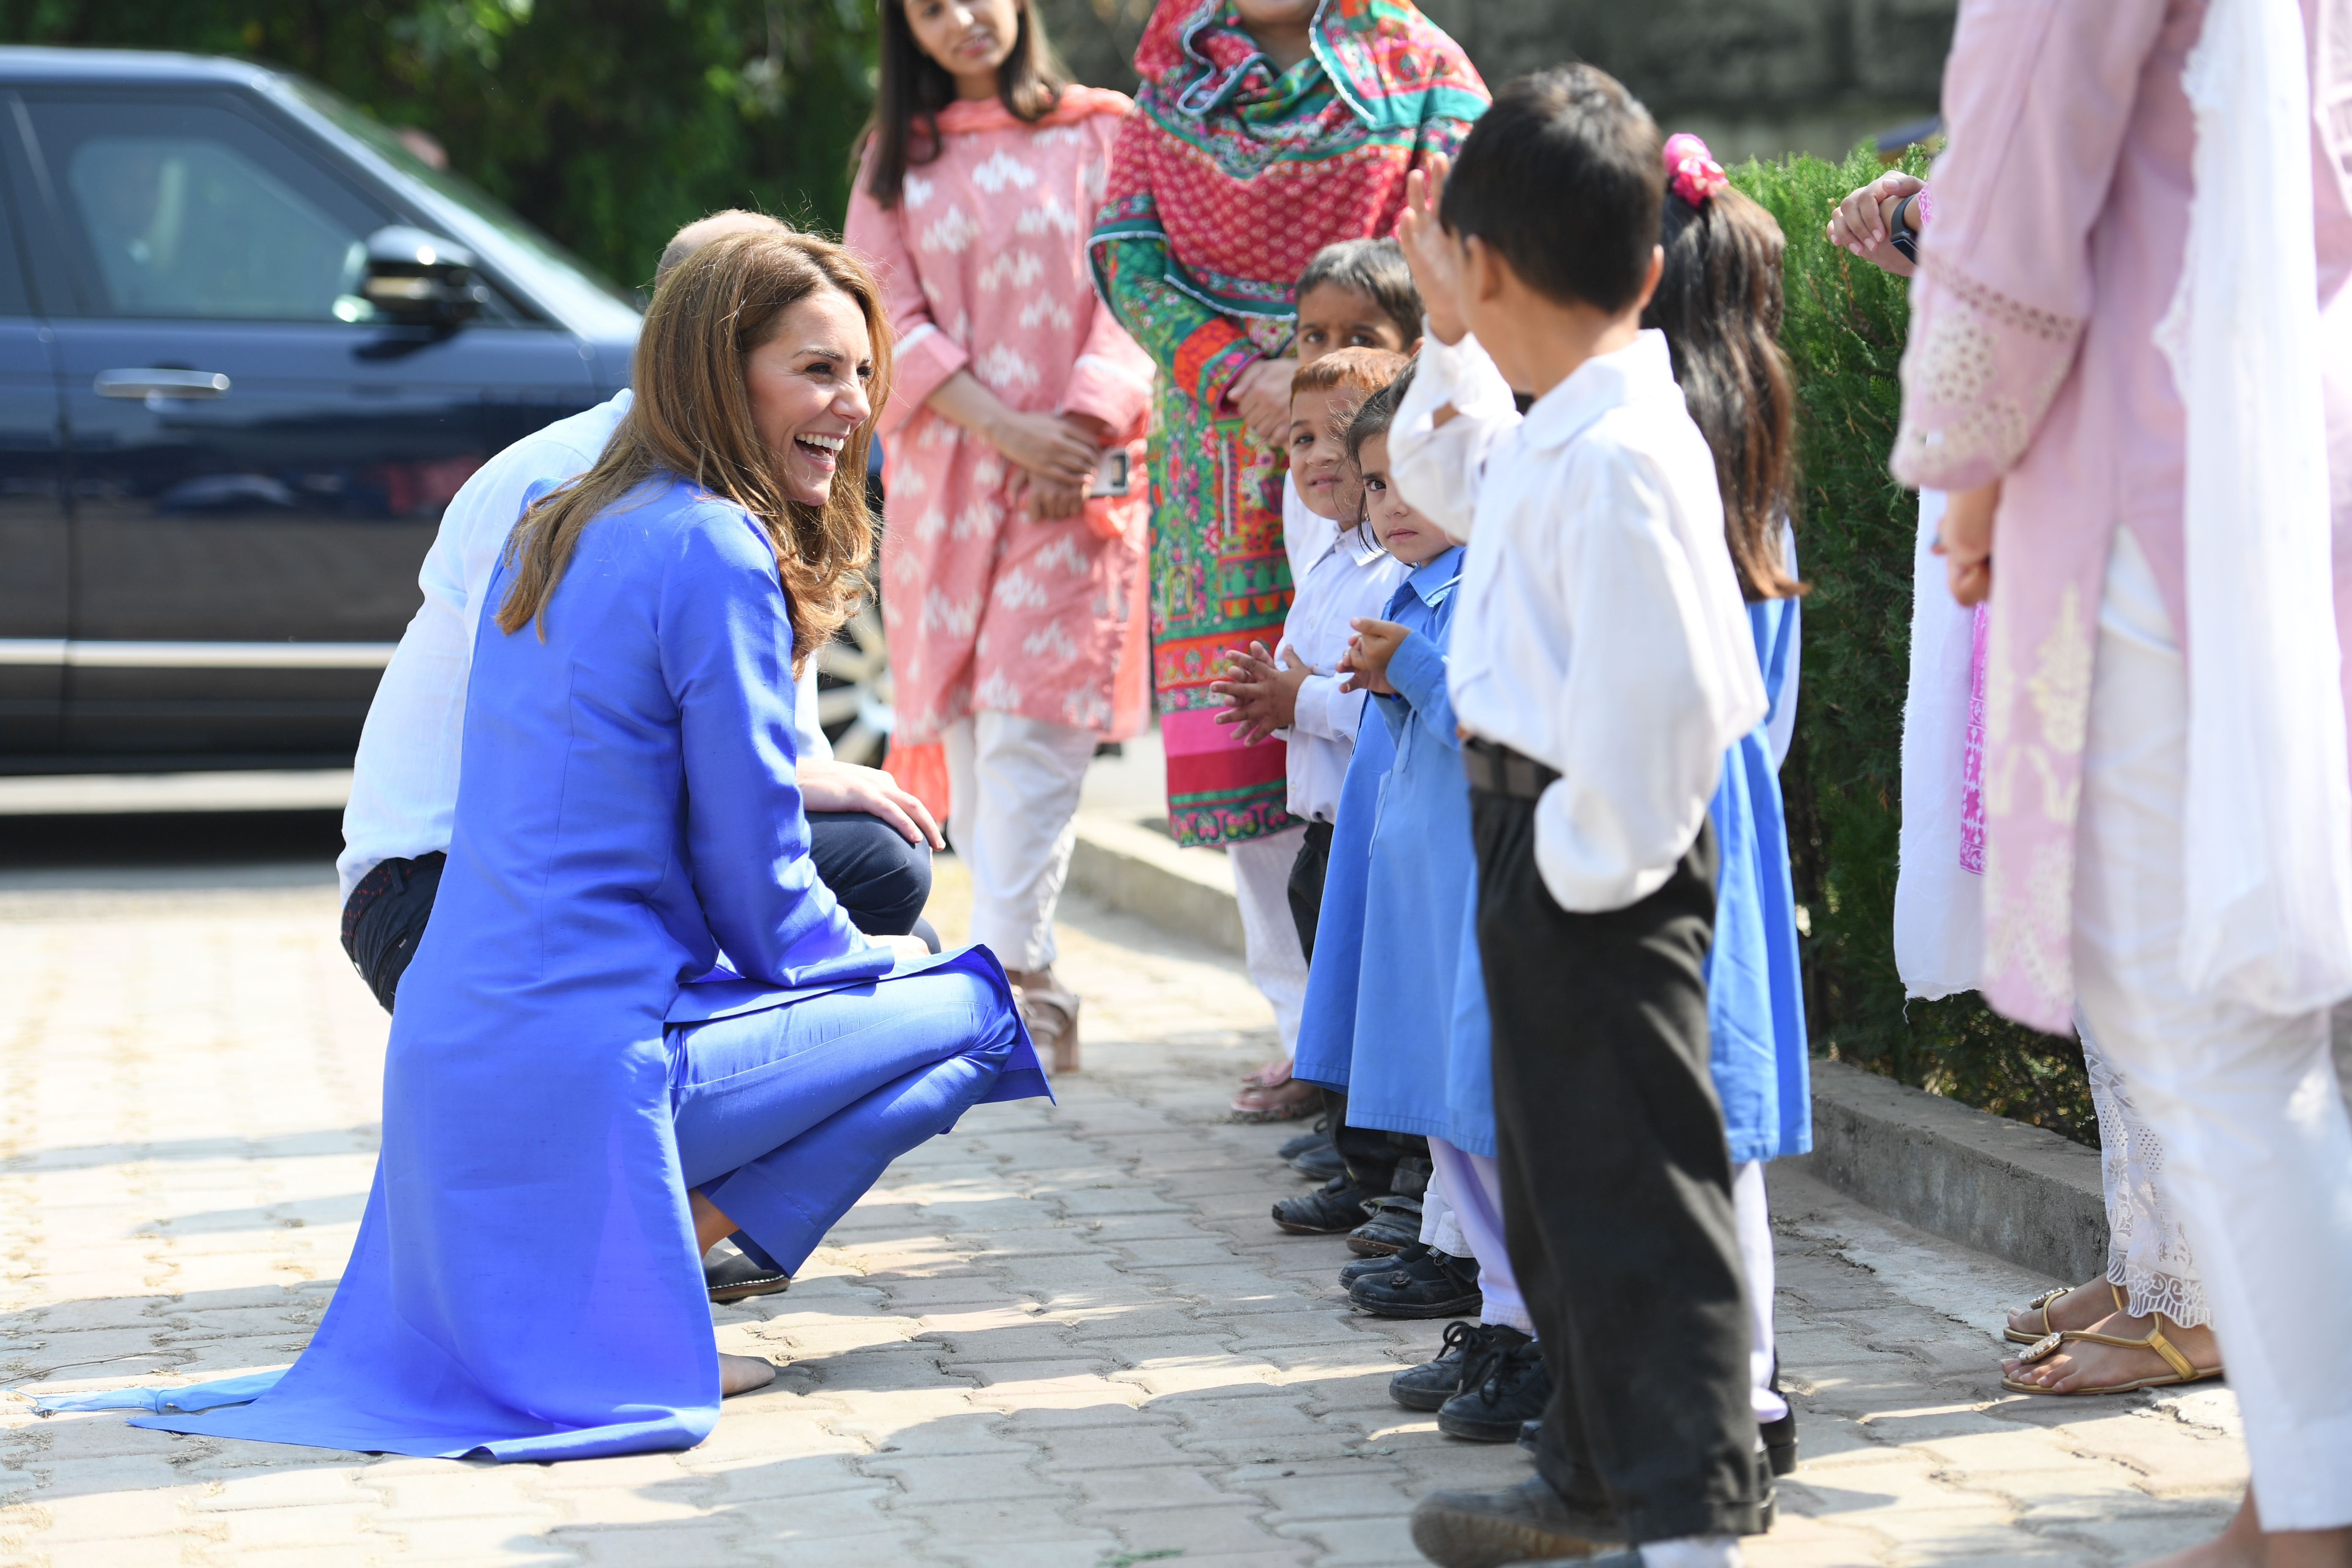 Kate was all smiles as children lined up to greet her